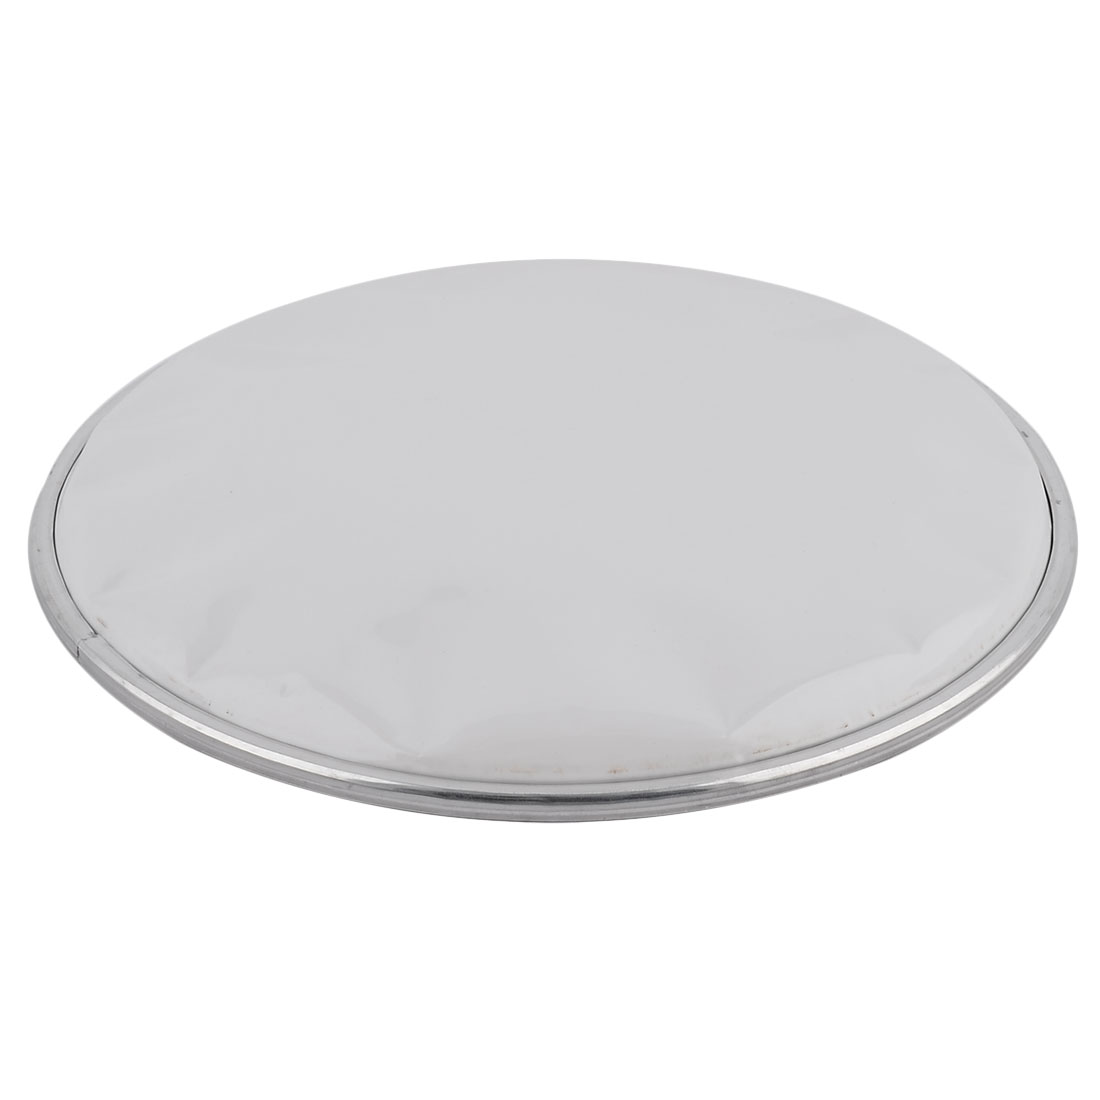 8.7 Inch Diameter PET Coated Single-ply Snare Drum Head White